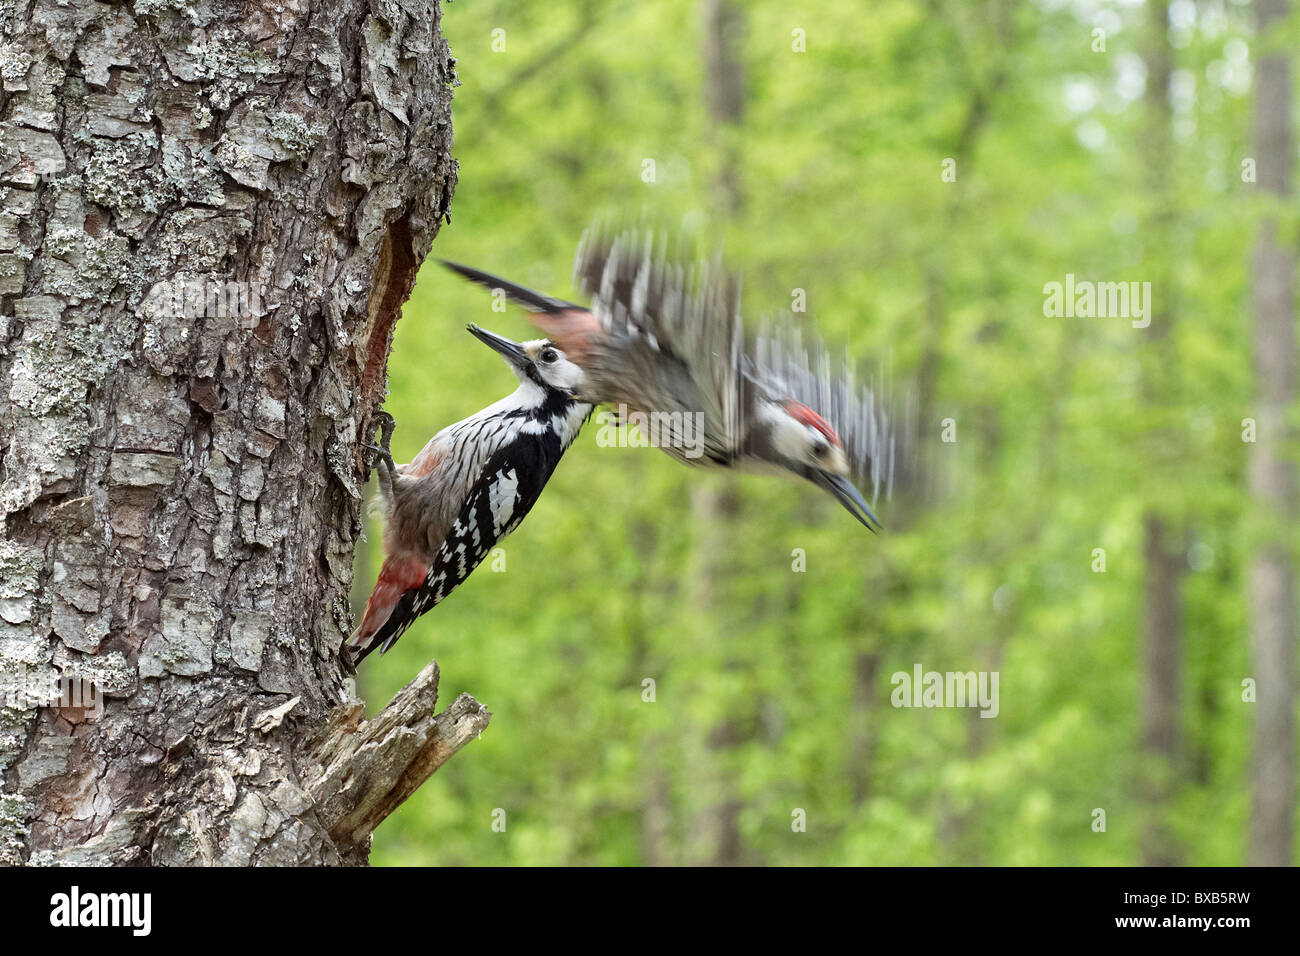 White-backed woodpeckers perching on tree, close-up - Stock Image